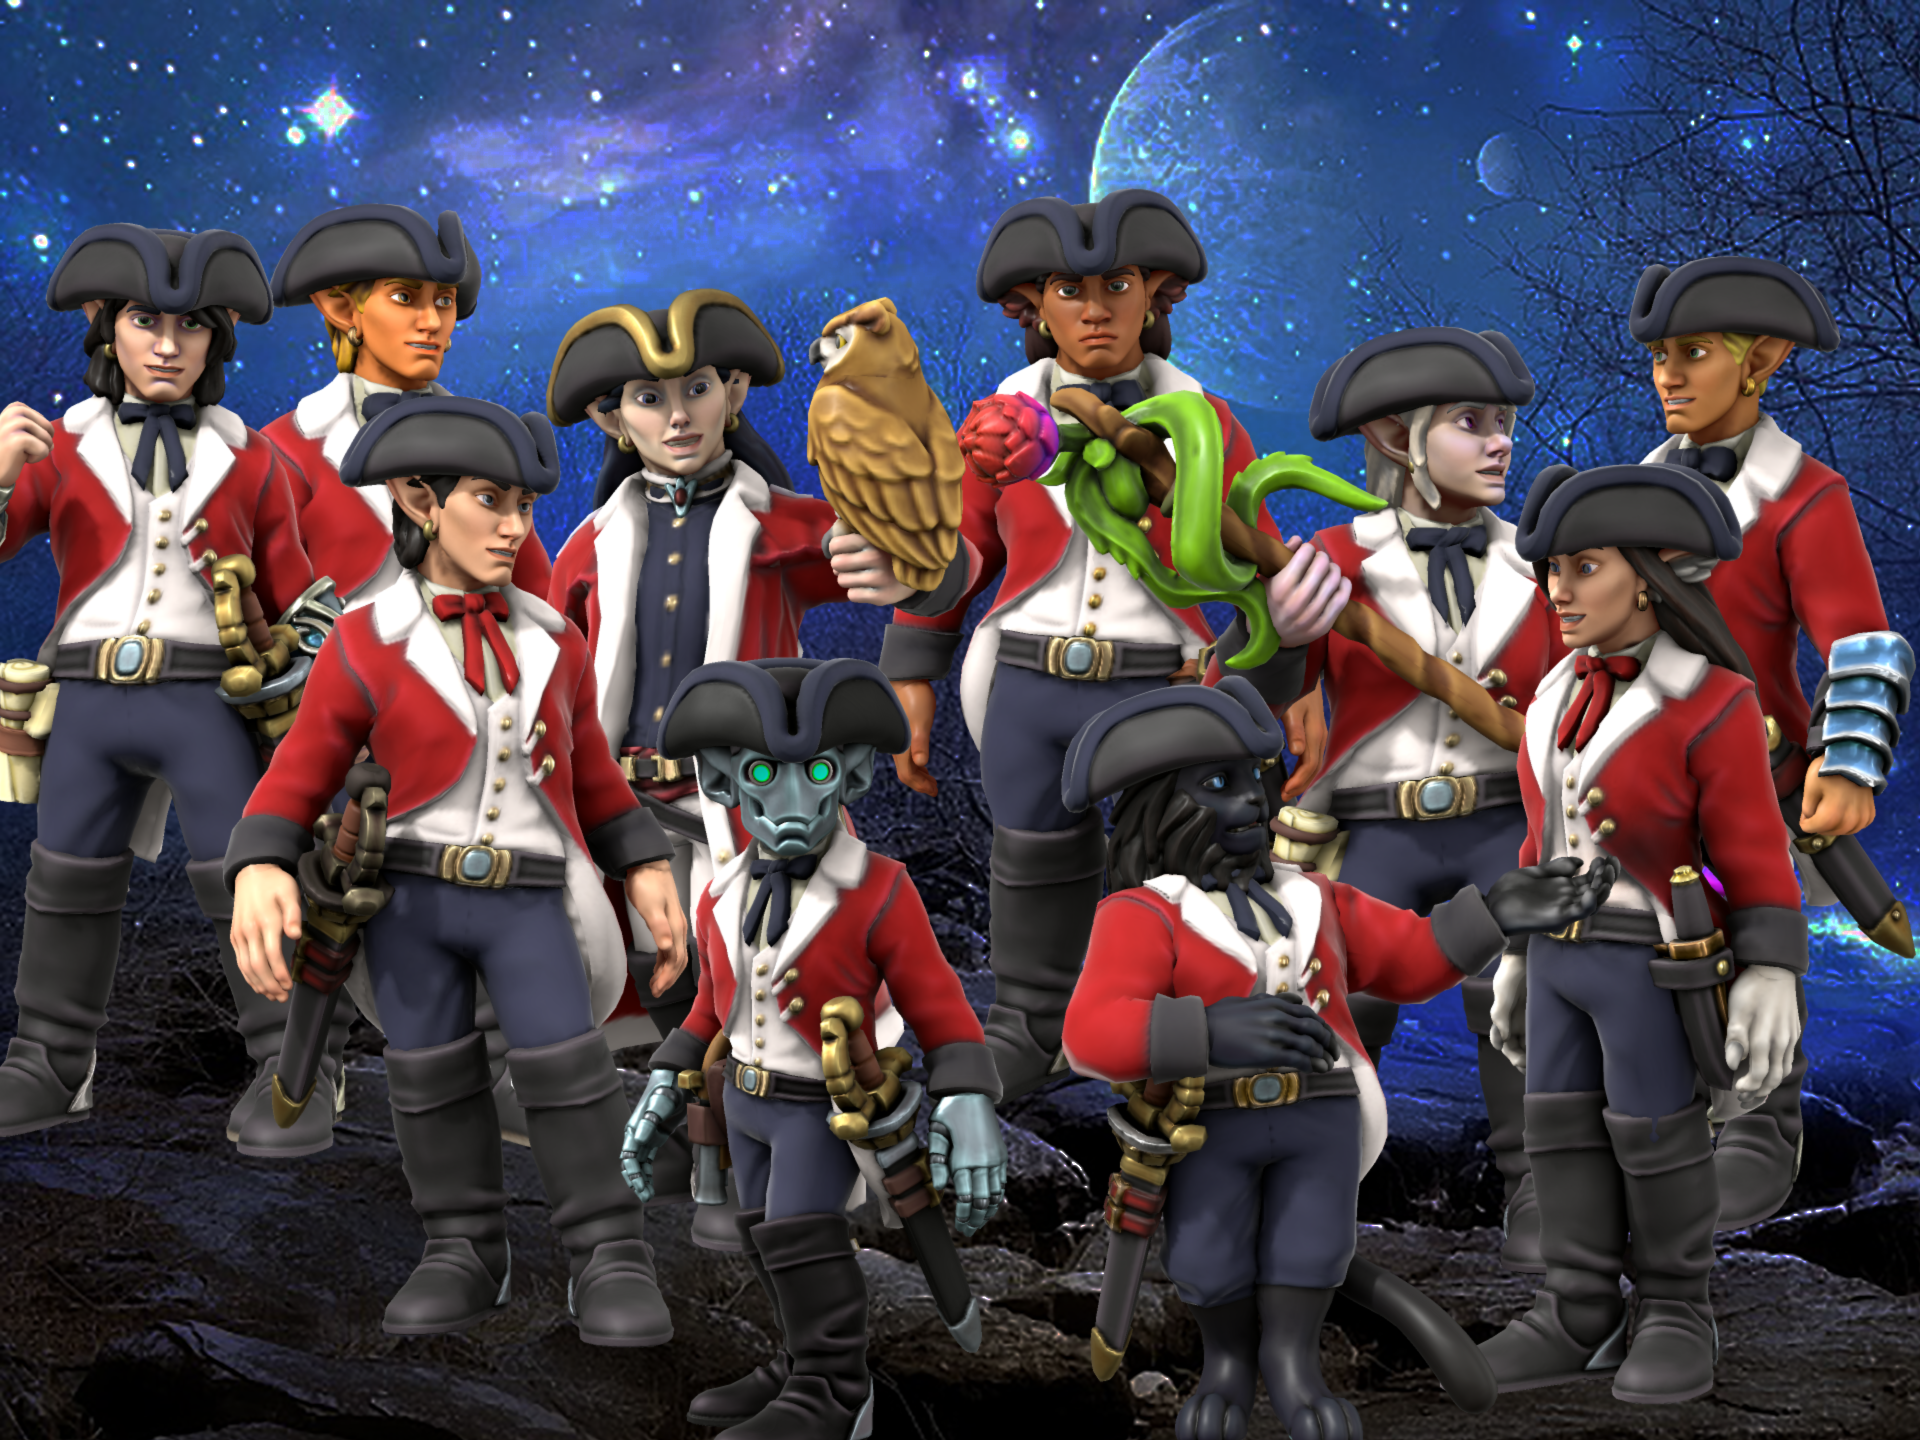 Toy Soldiers Group Portrait 1.png